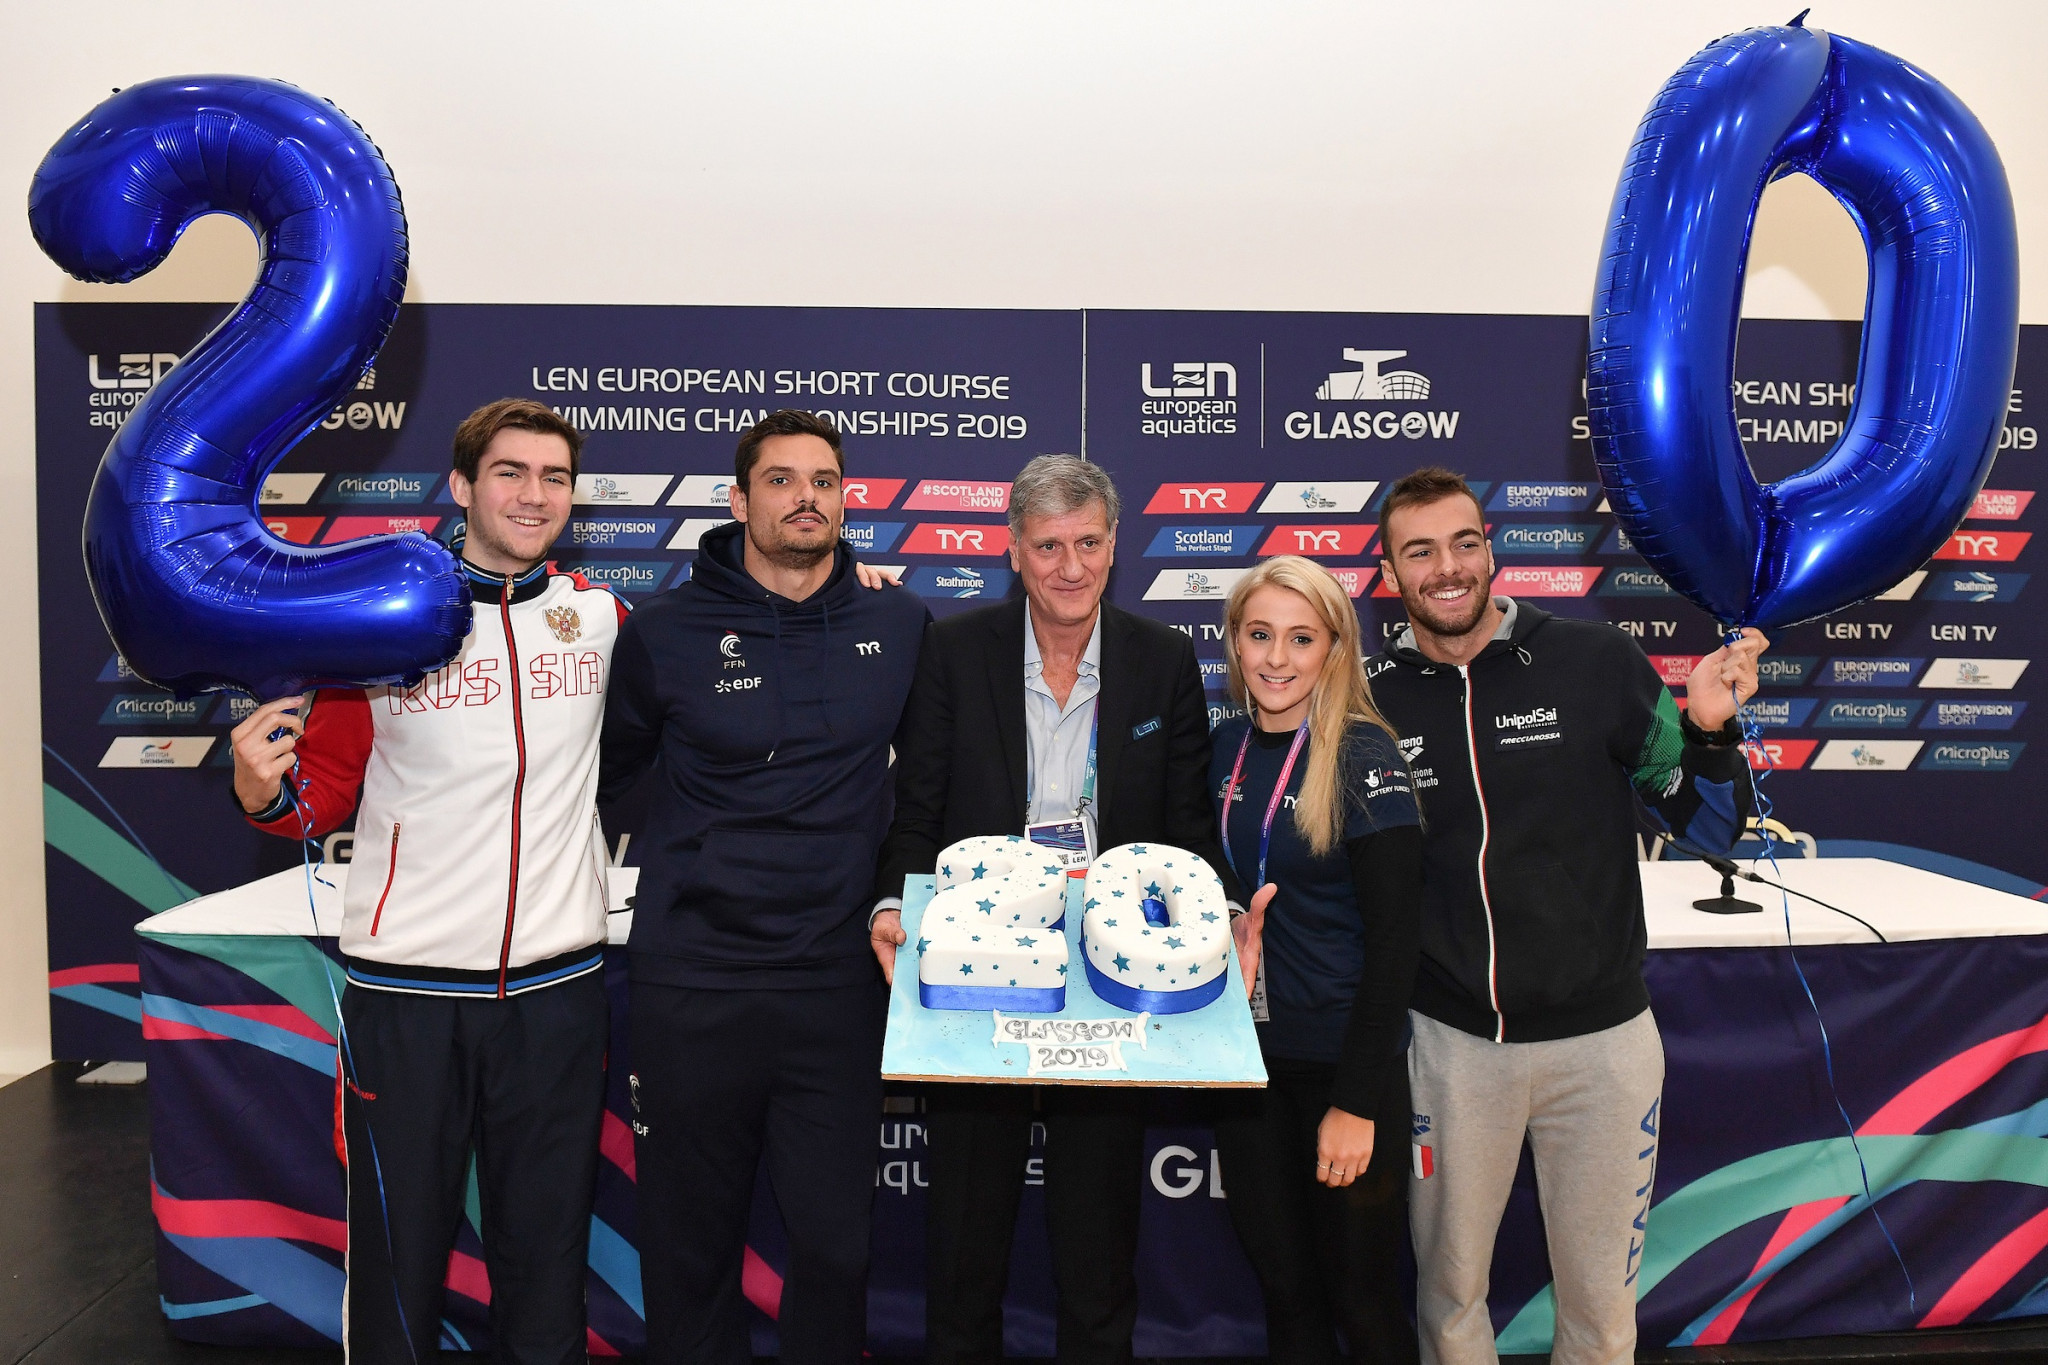 Stellar line-up confirmed for 20th edition of European Short Course Swimming Championships